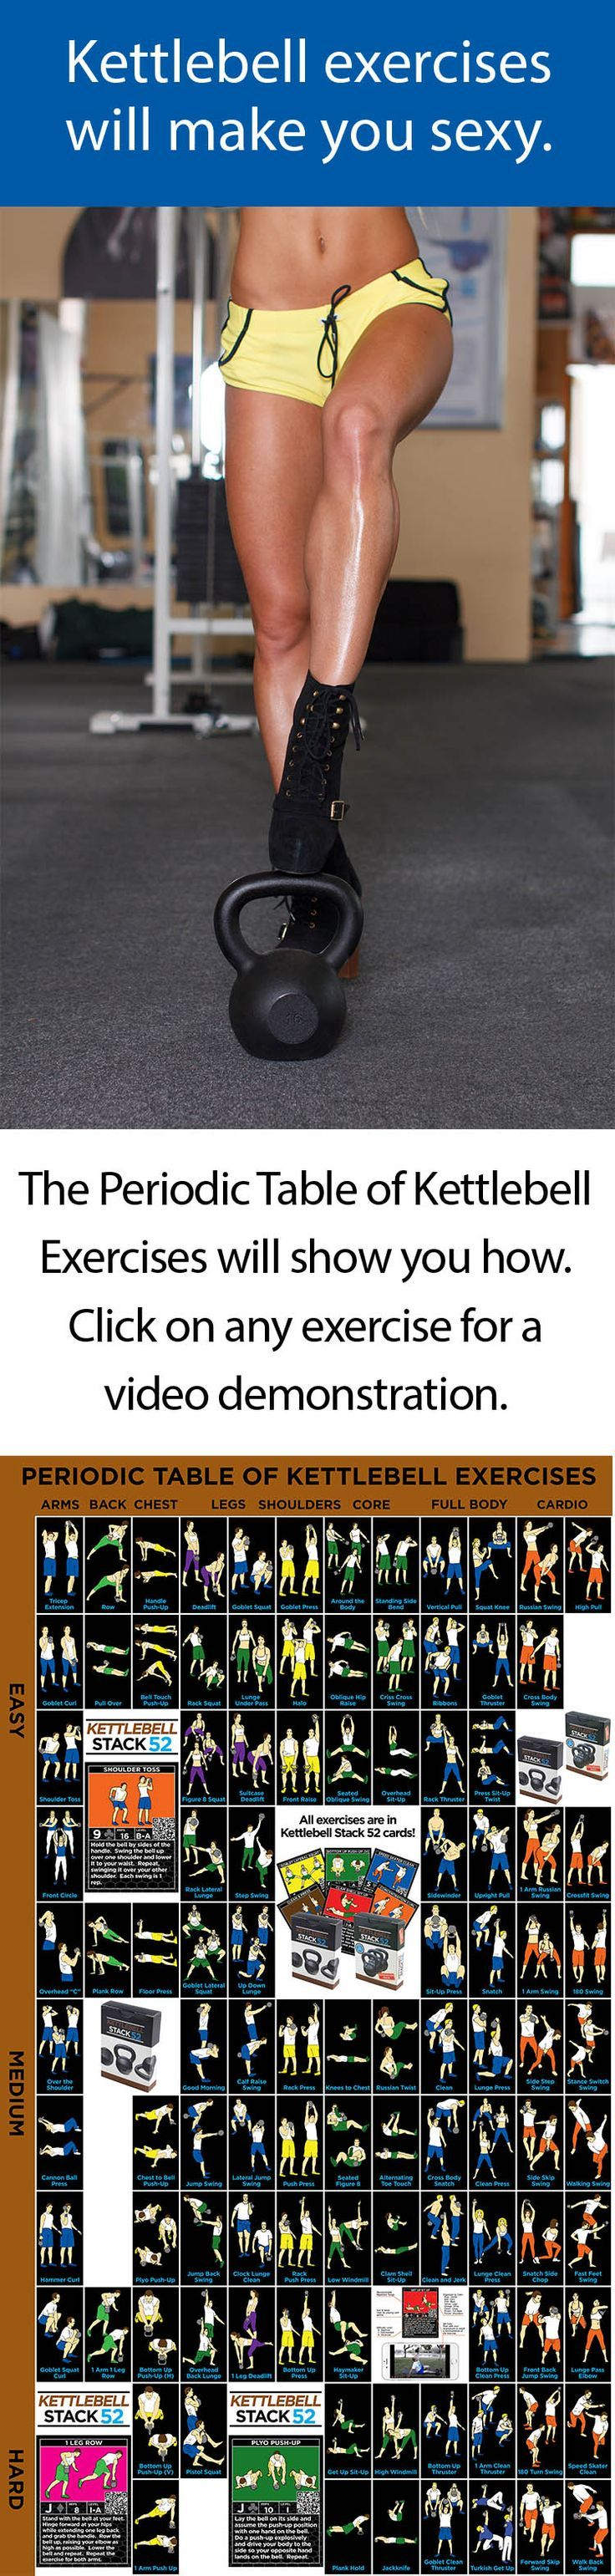 Cards on the table mathistopheles - Periodic Table Of Kettlebell Exercises